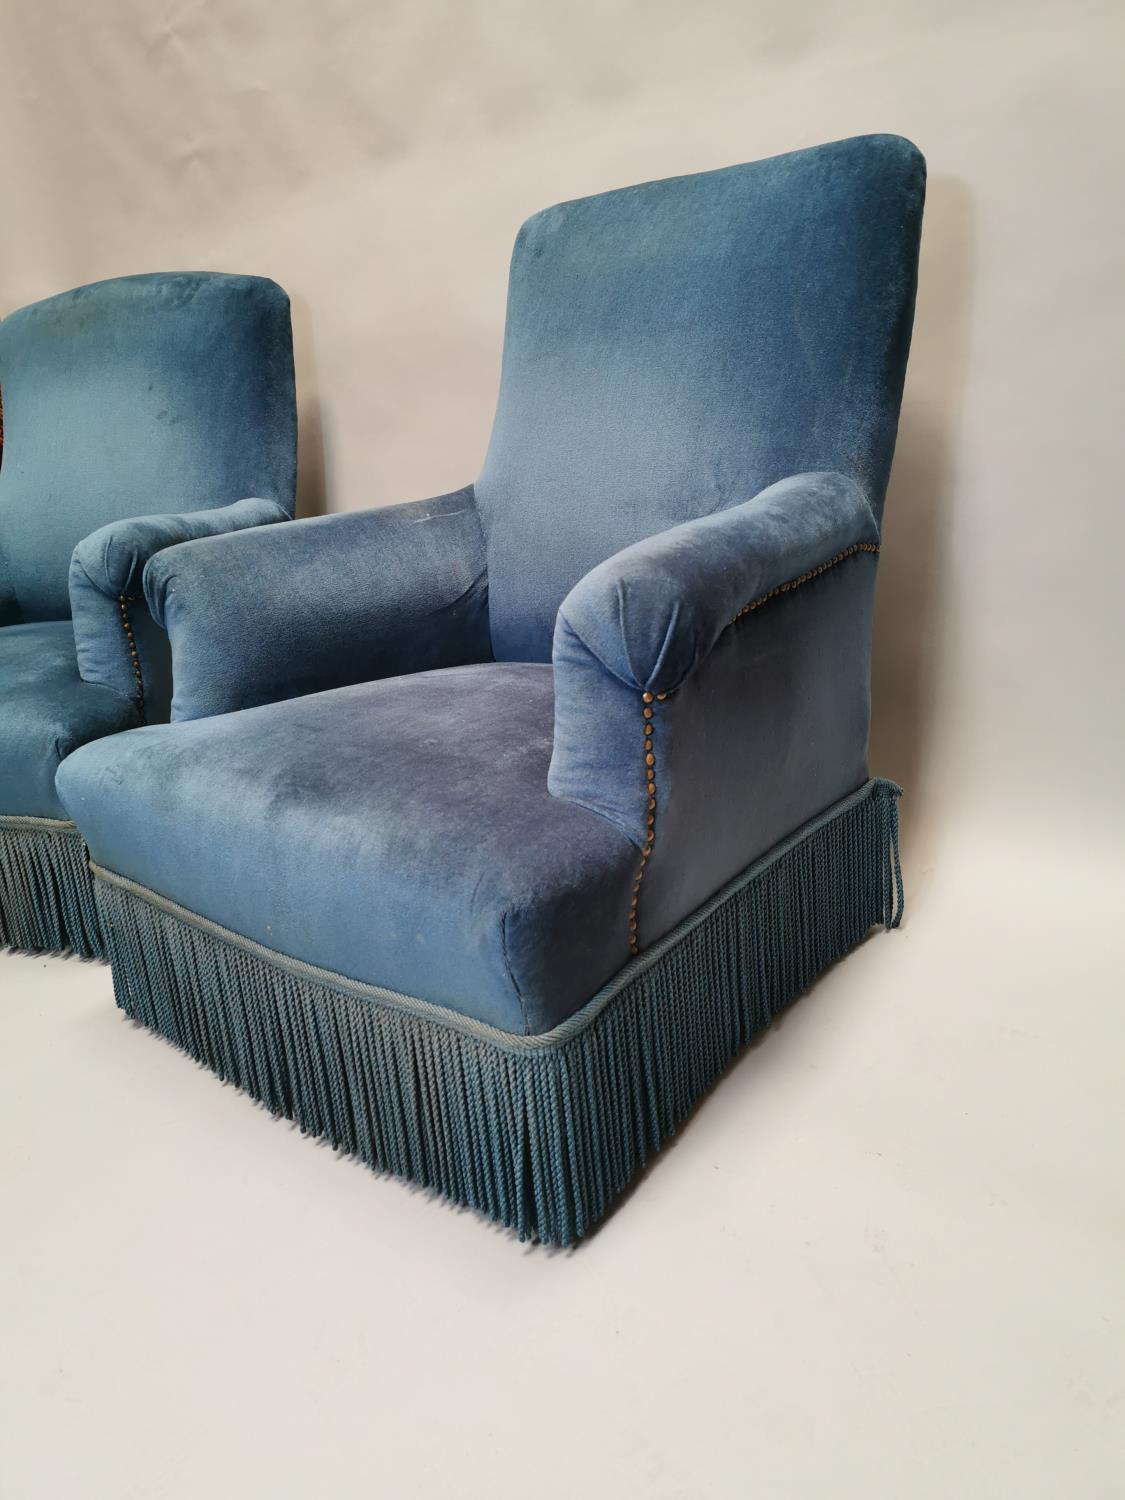 Pair of 19th C. mahogany arm chairs upholstered in blue crush velvet 94 cm H x 80 cm W x 80 cm D - Image 2 of 3